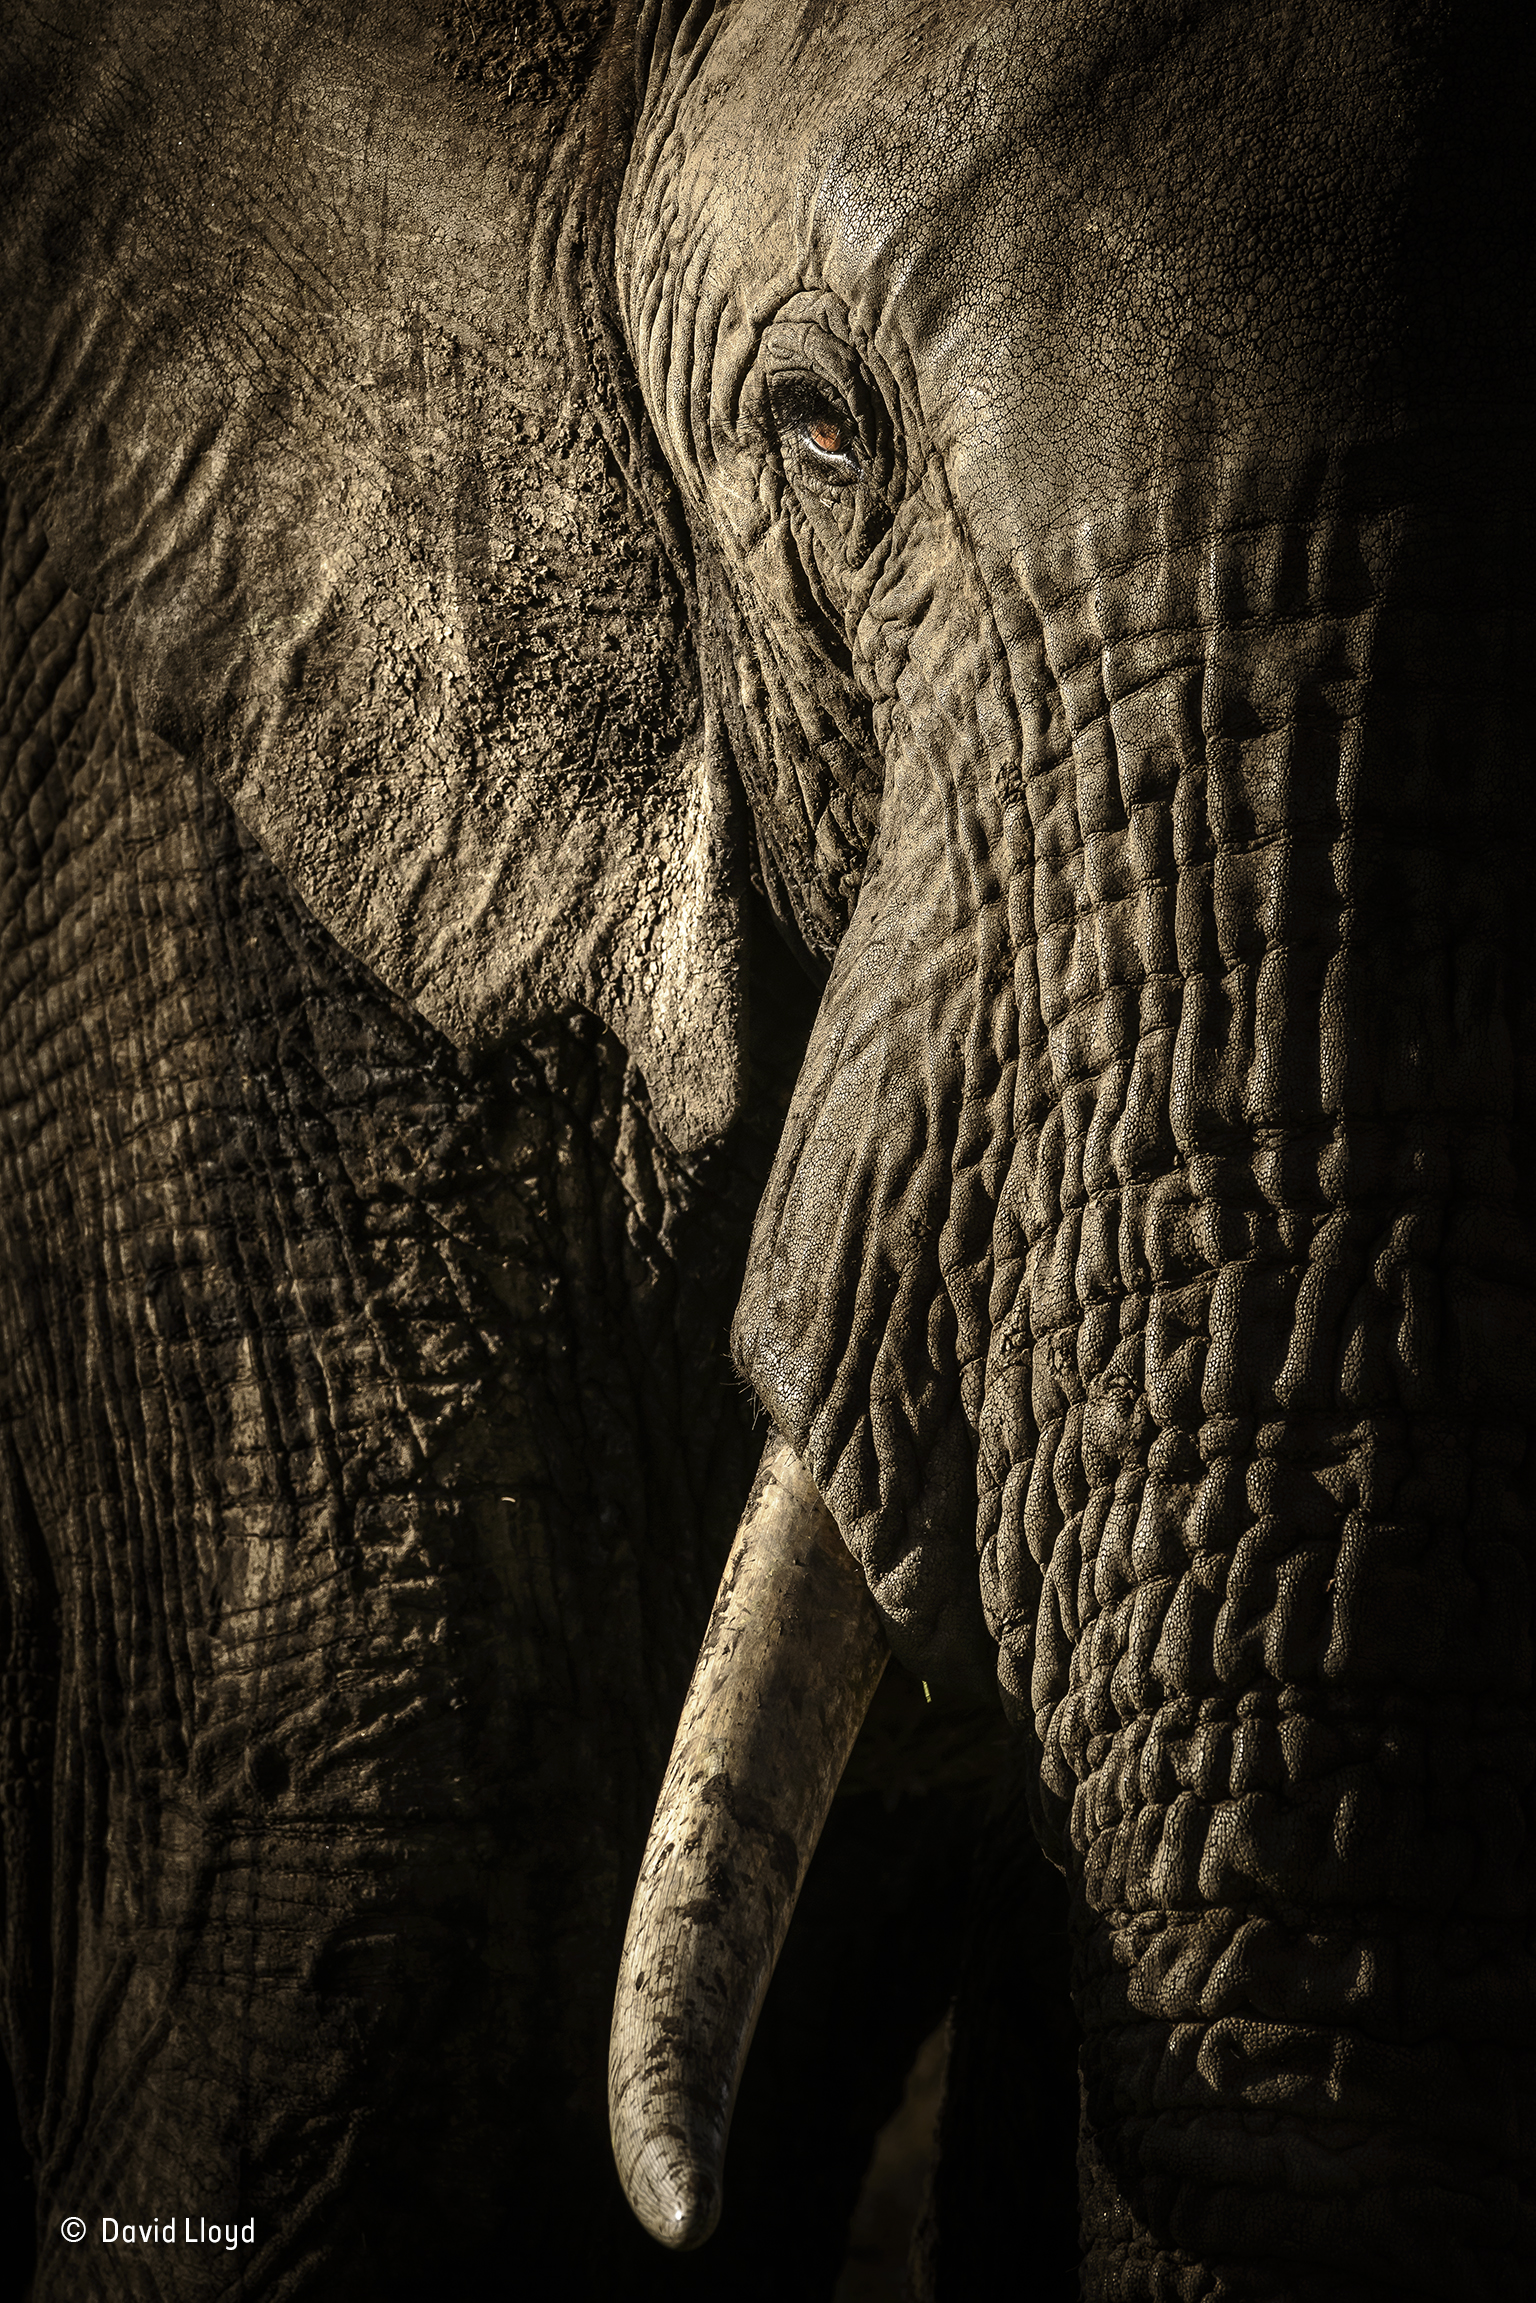 a close up shot of a wrinkled elephant